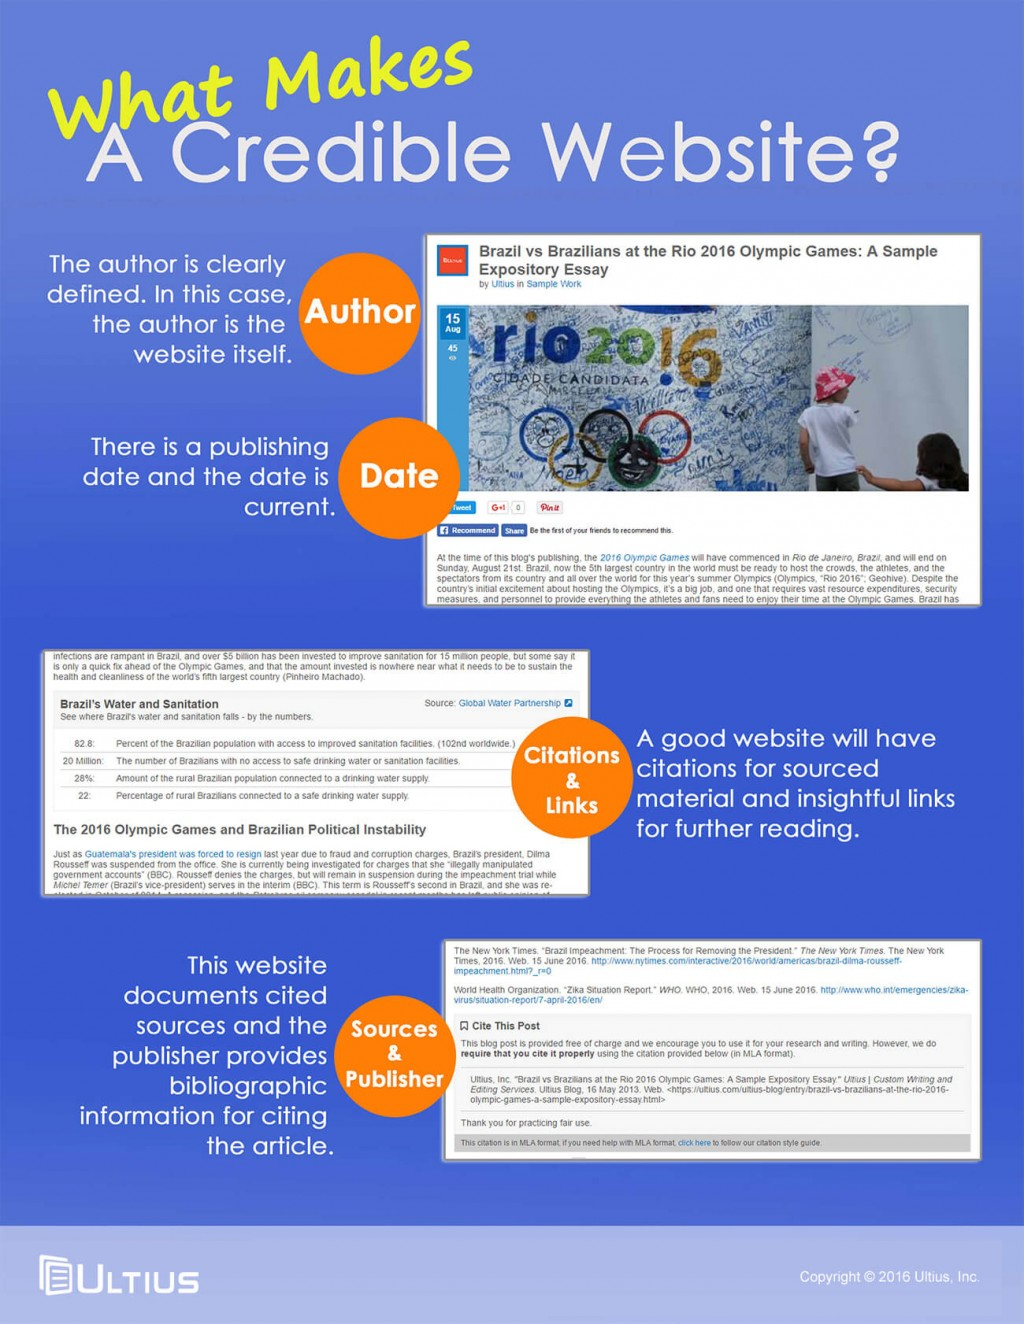 005 What Makes Website Credible Research Paper Is Cnn Source Staggering A For Large